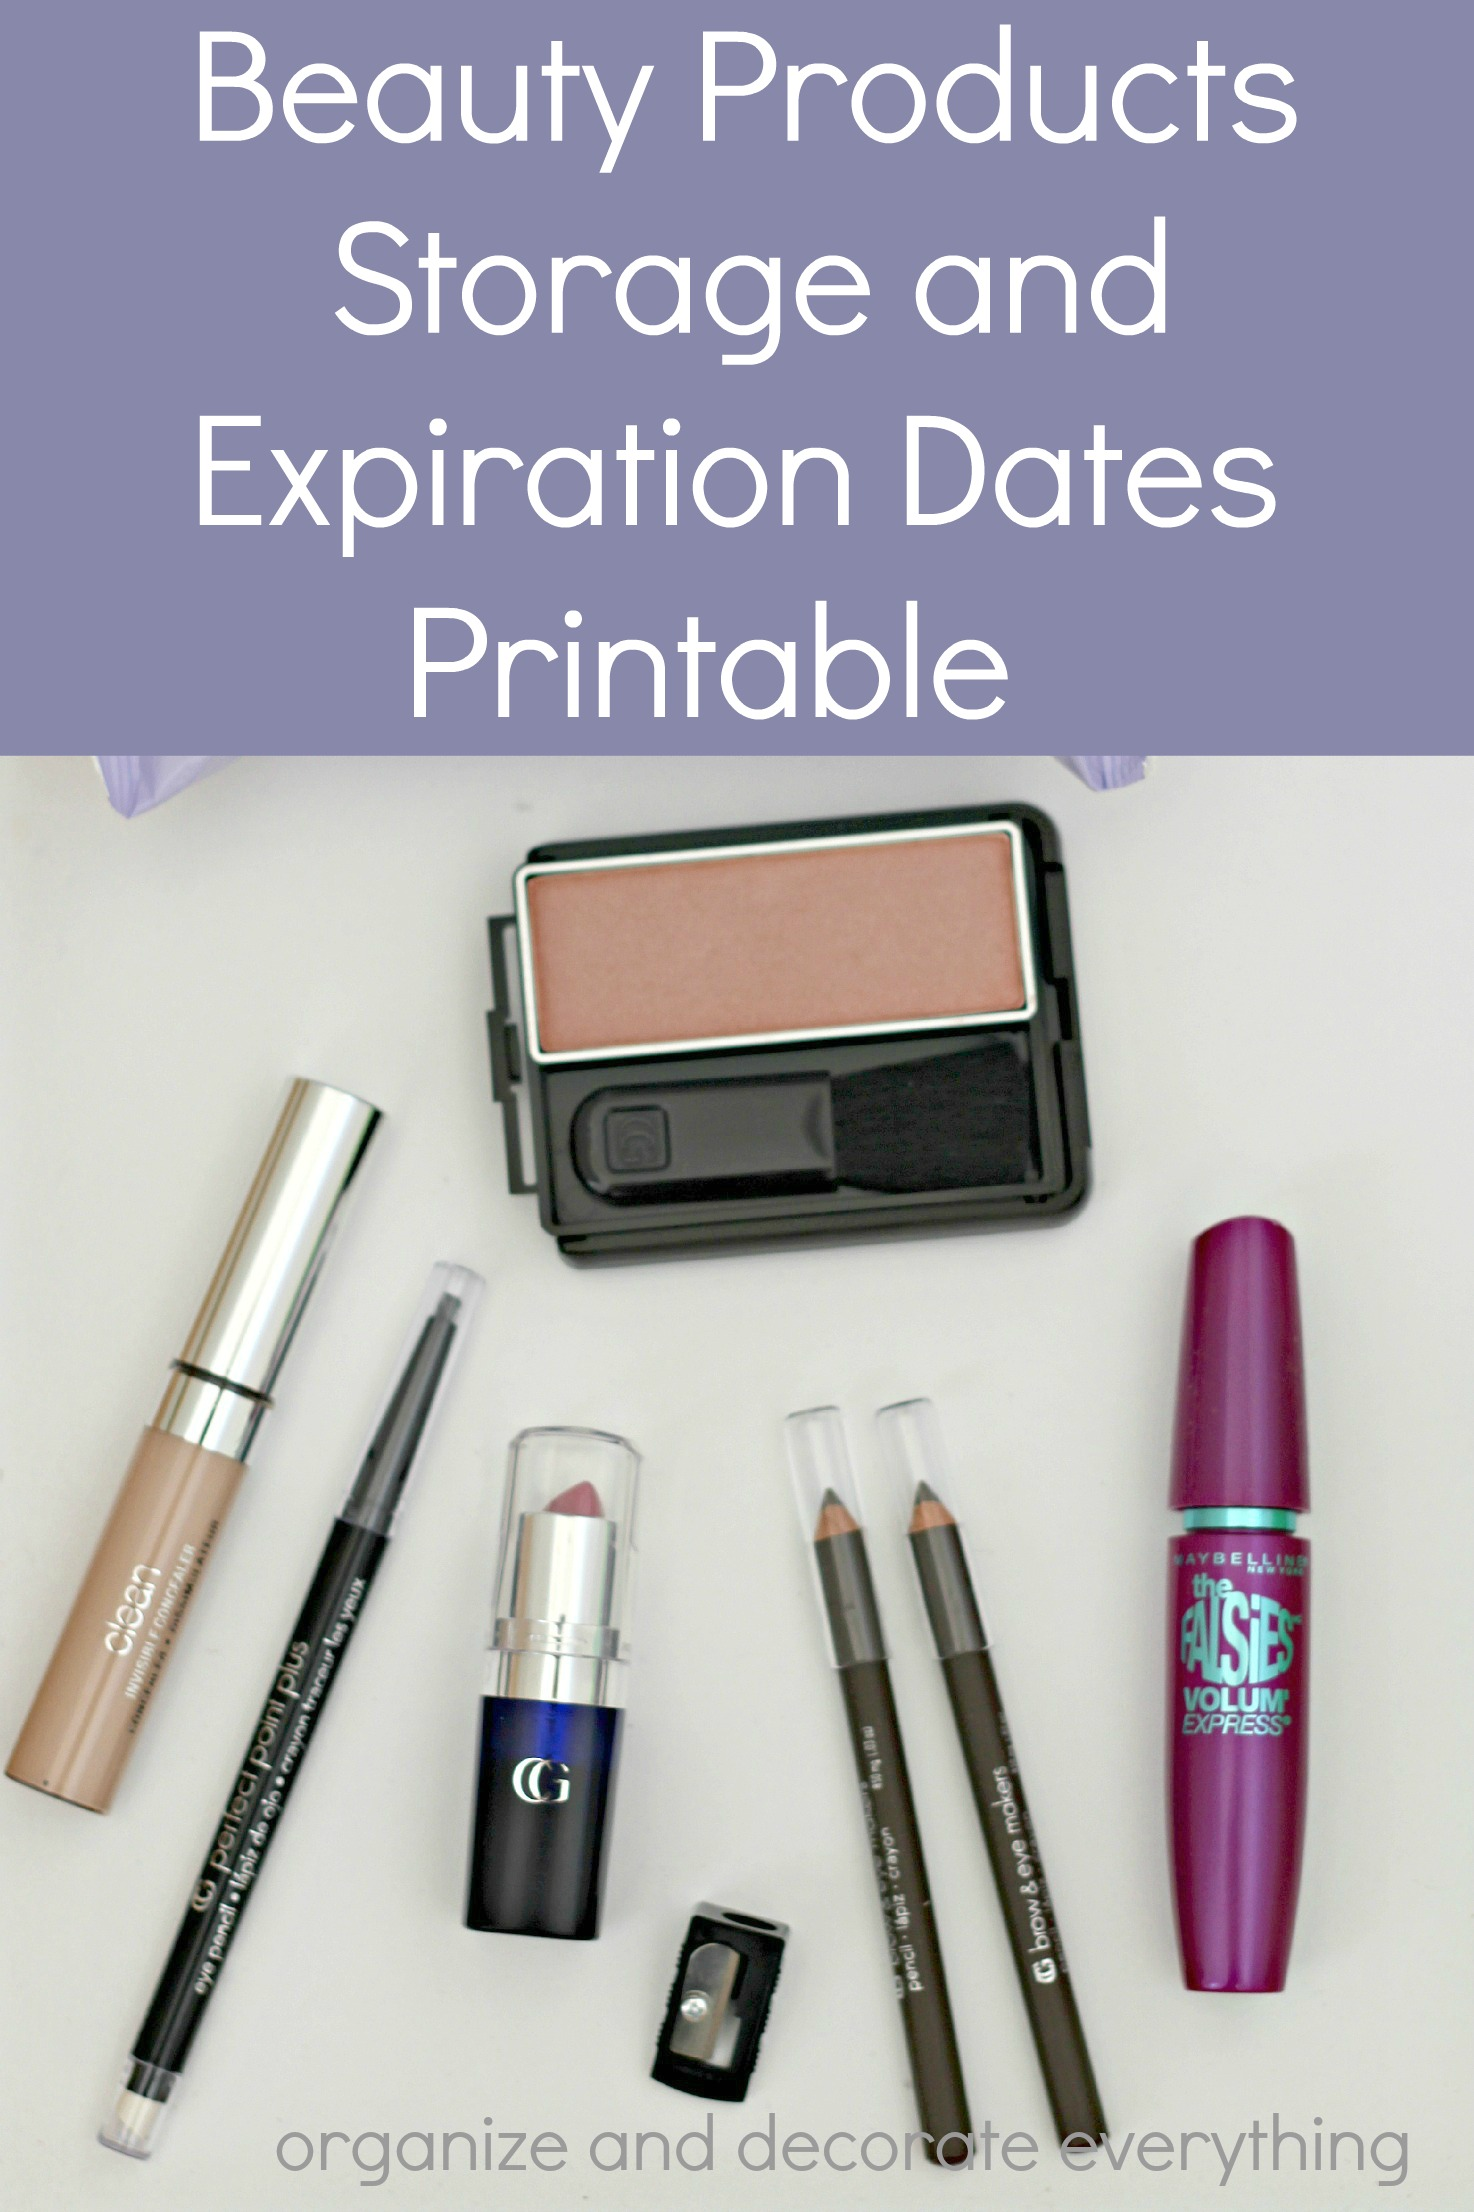 Cosmetic expiration date in Brisbane